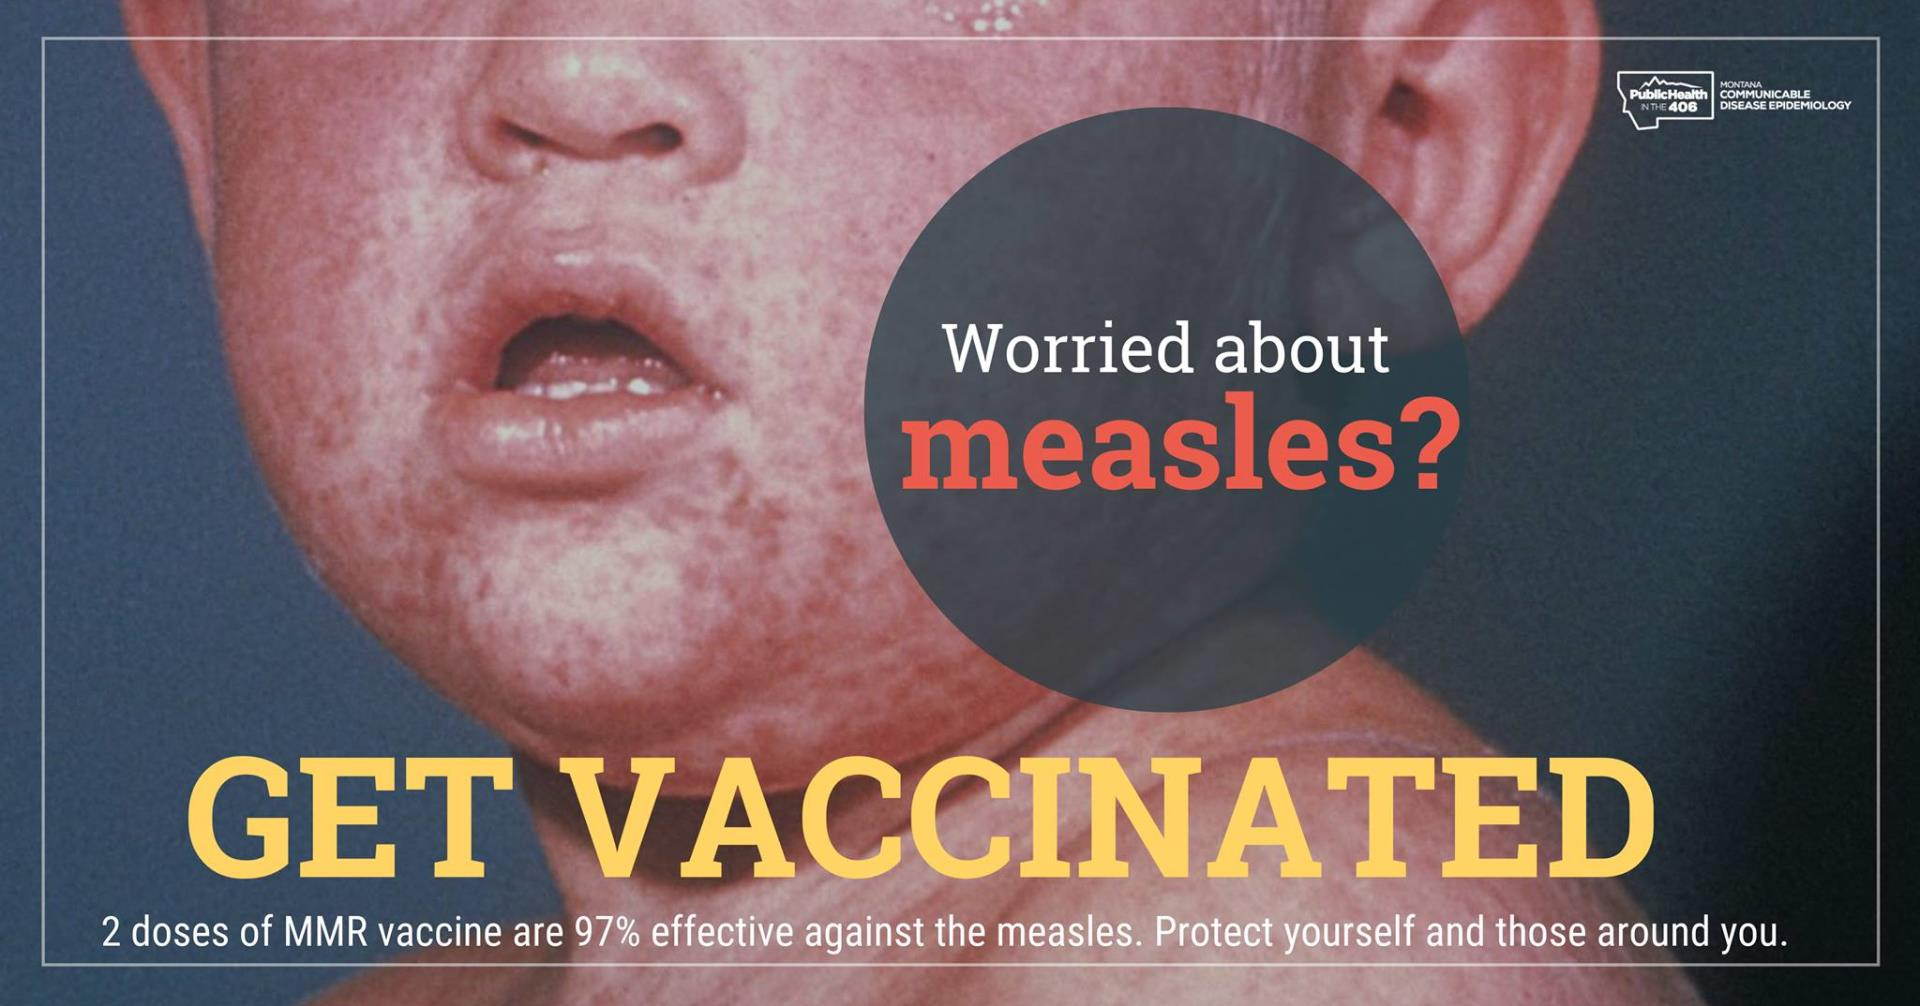 DPHHS Measles Get Vaccinated